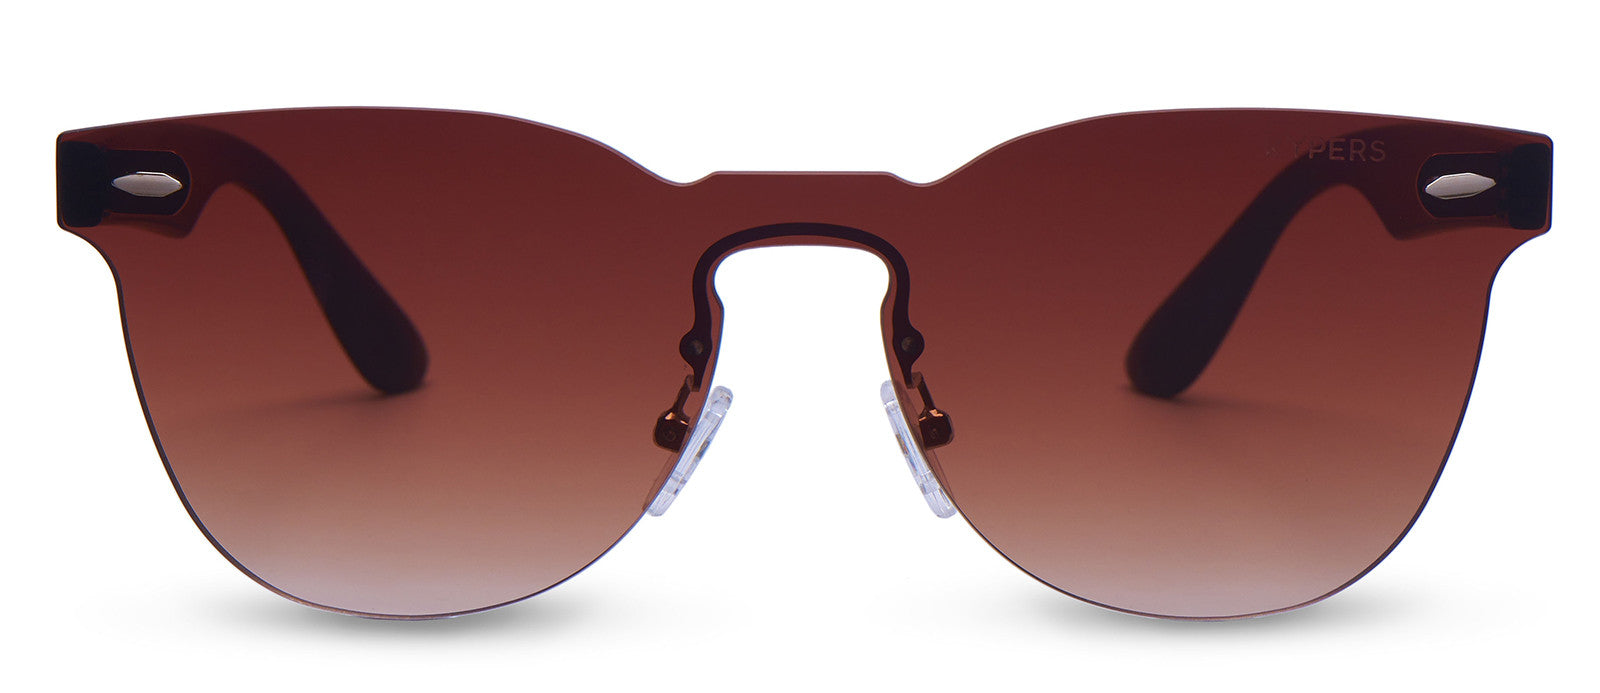 KYPERS sunglasses model ROSE RS001 with black frame and gradient brown lens